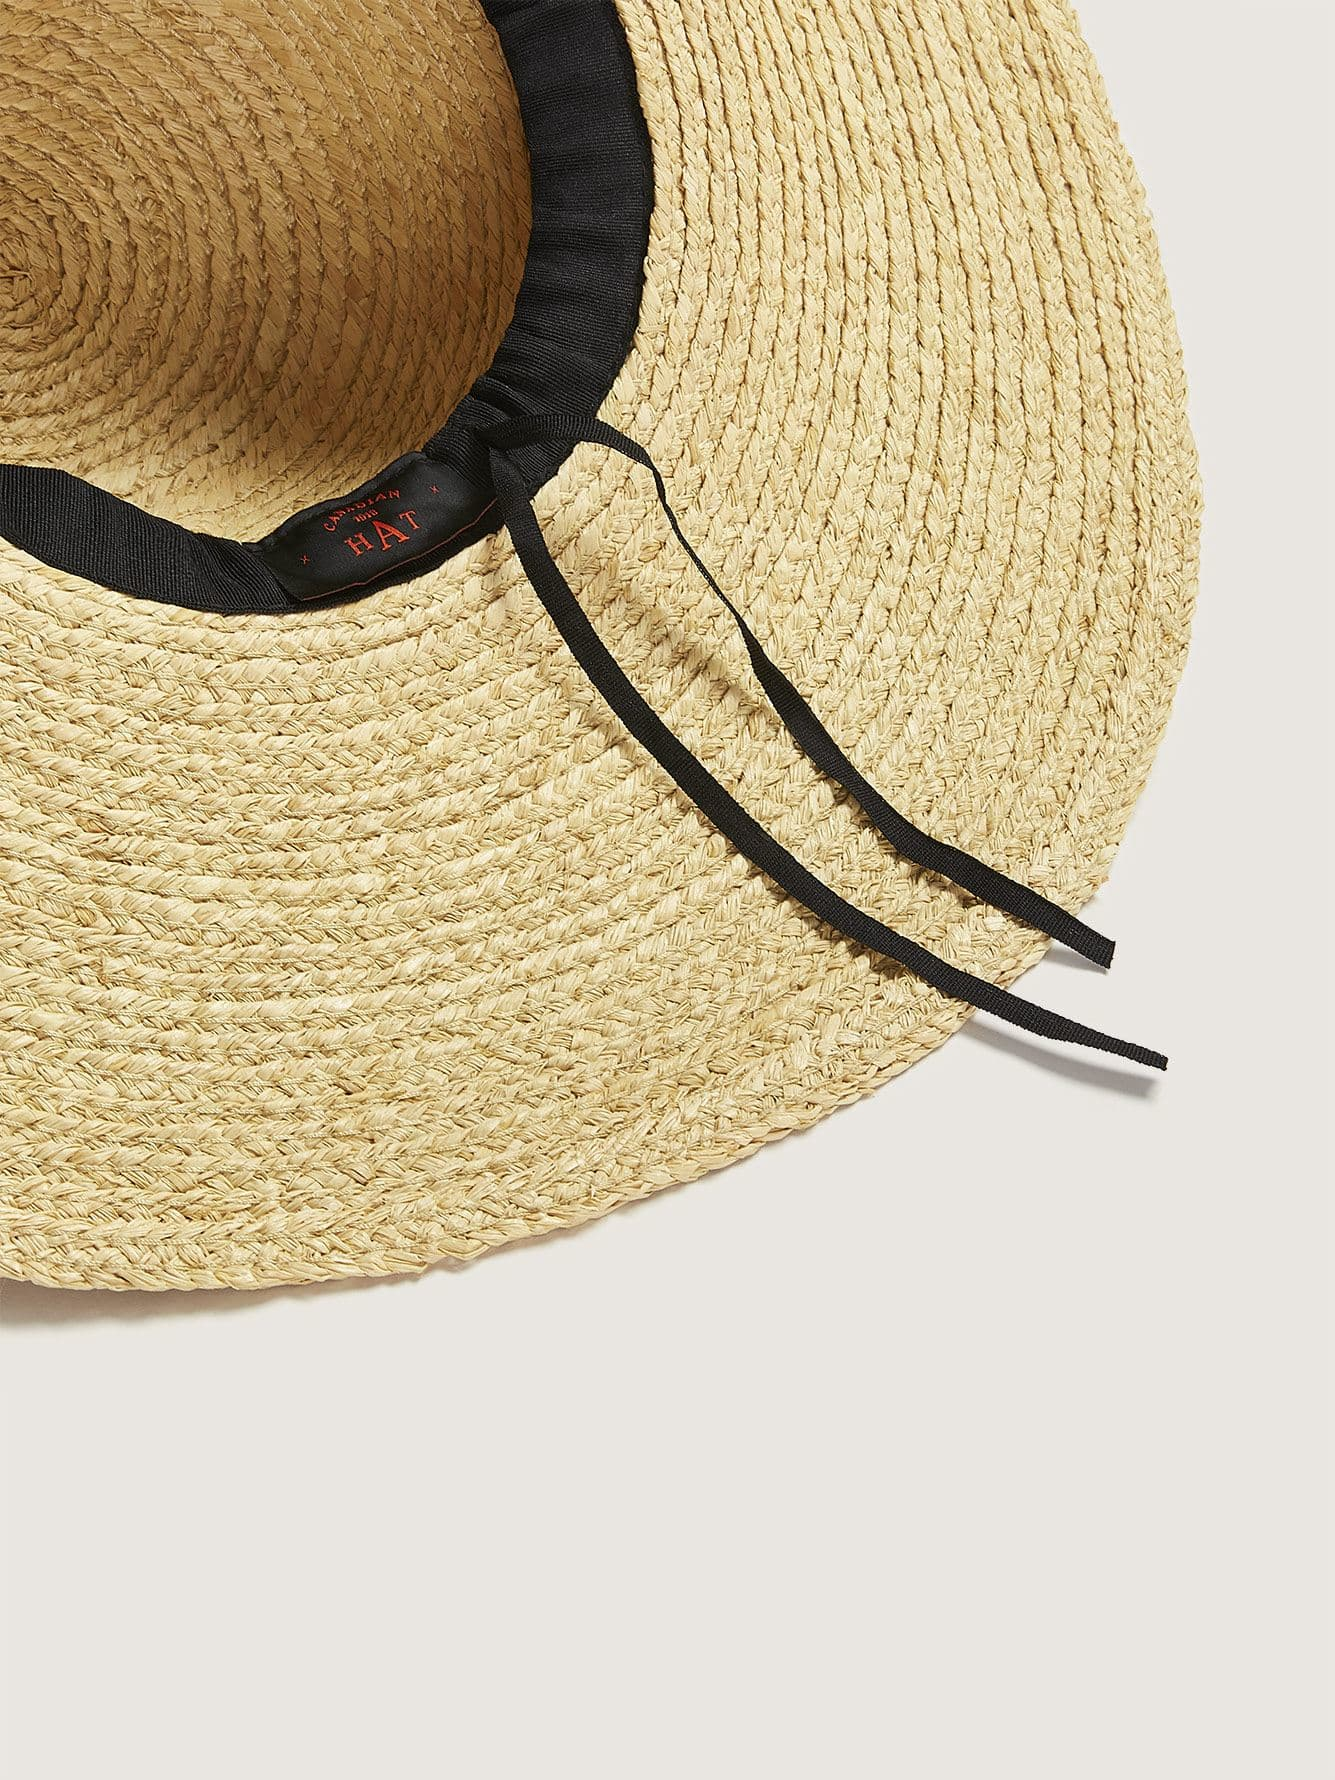 Canadian Hat - Floppy Straw Hat